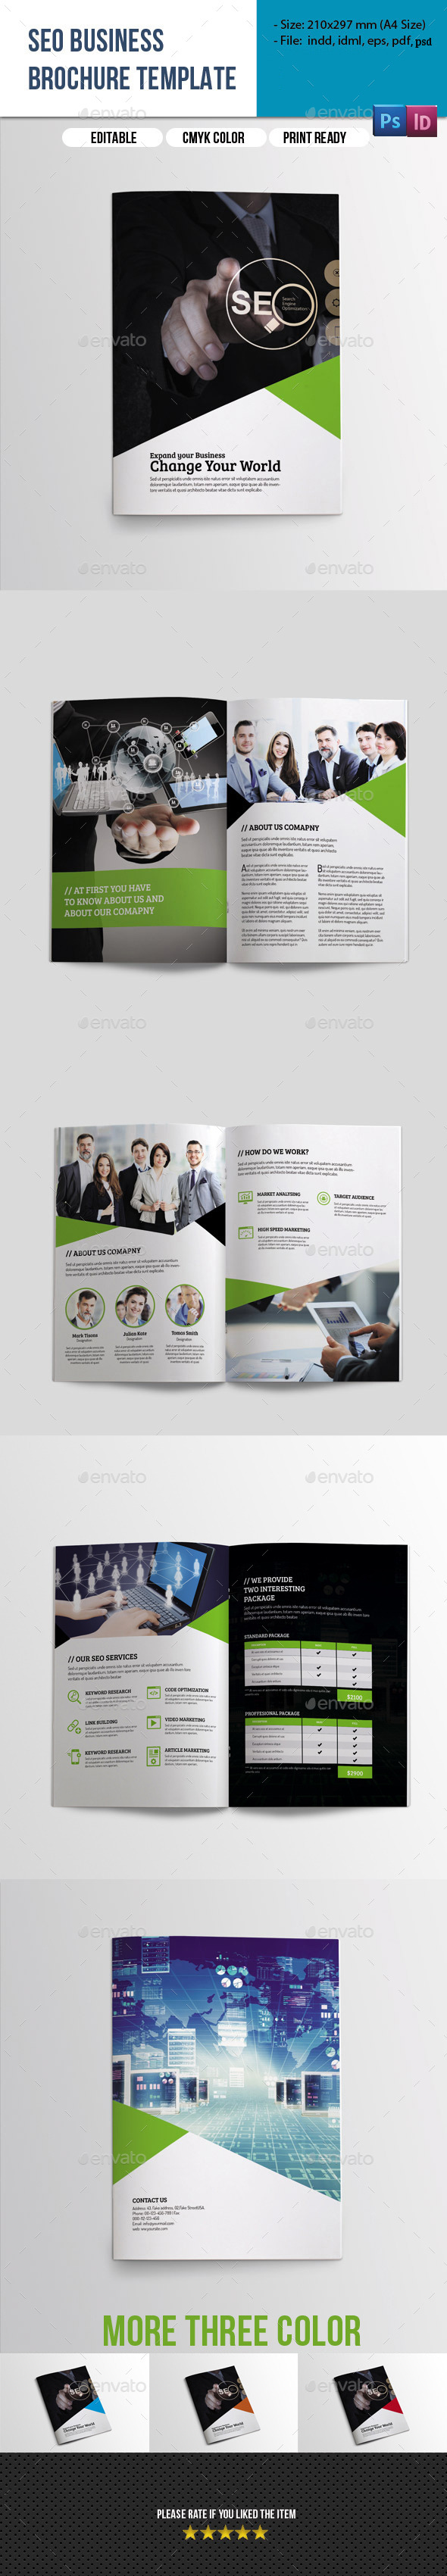 8 Pages SEO Business Brochure